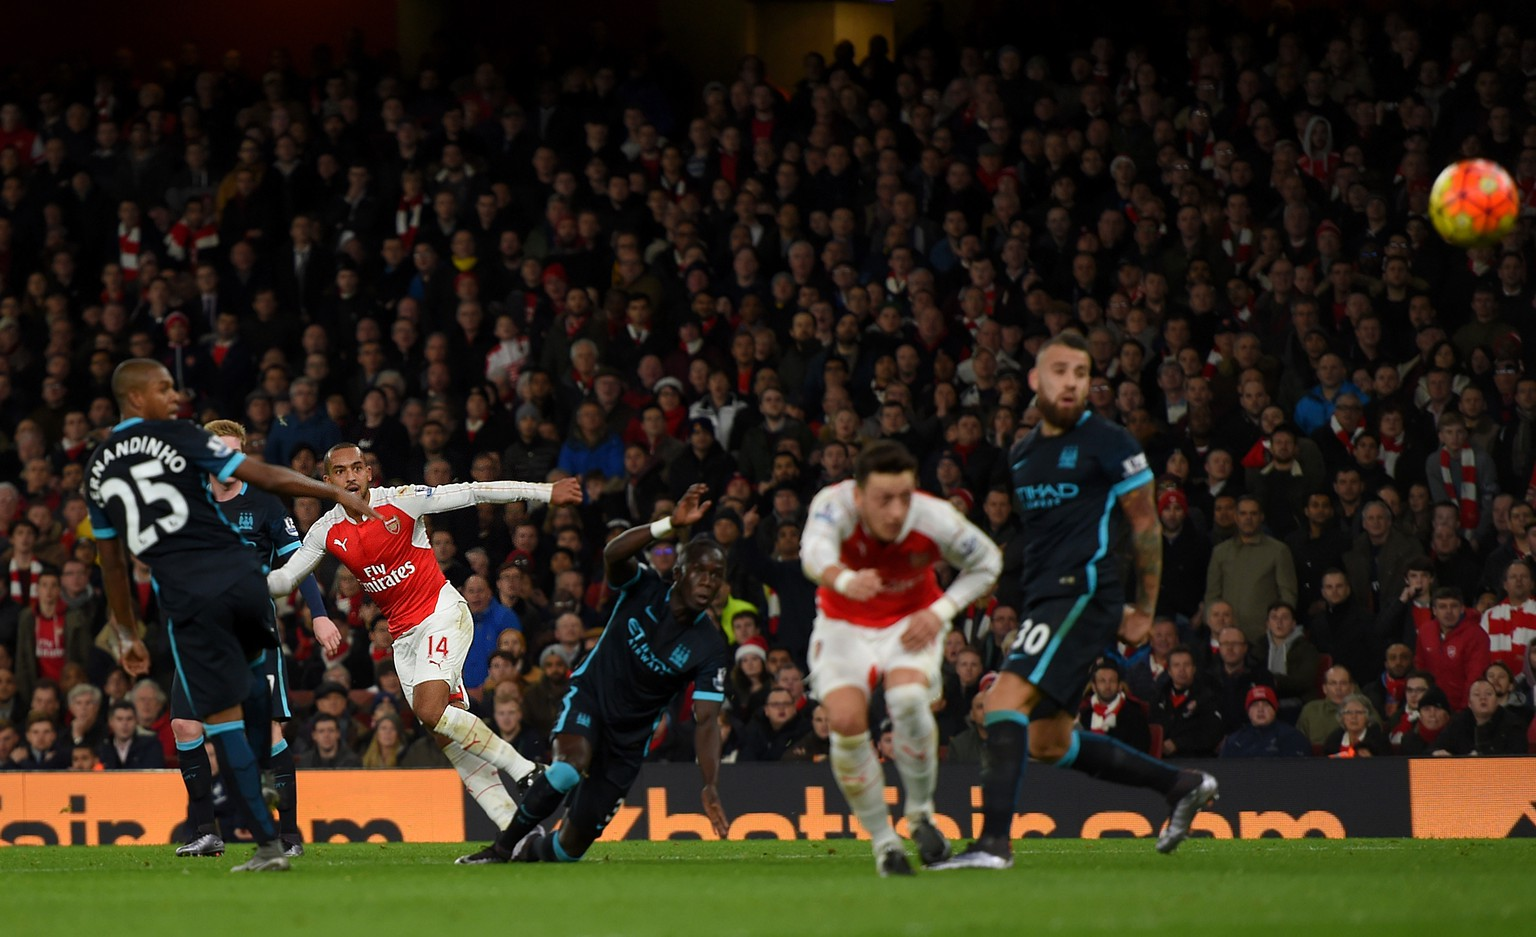 LONDON, ENGLAND - DECEMBER 21:  Theo Walcott of Arsenal (3L) scores his side's opening goal during the Barclays Premier League match between Arsenal and Manchester City at Emirates Stadium on December 21, 2015 in London, England.  (Photo by Michael Regan/Getty Images)